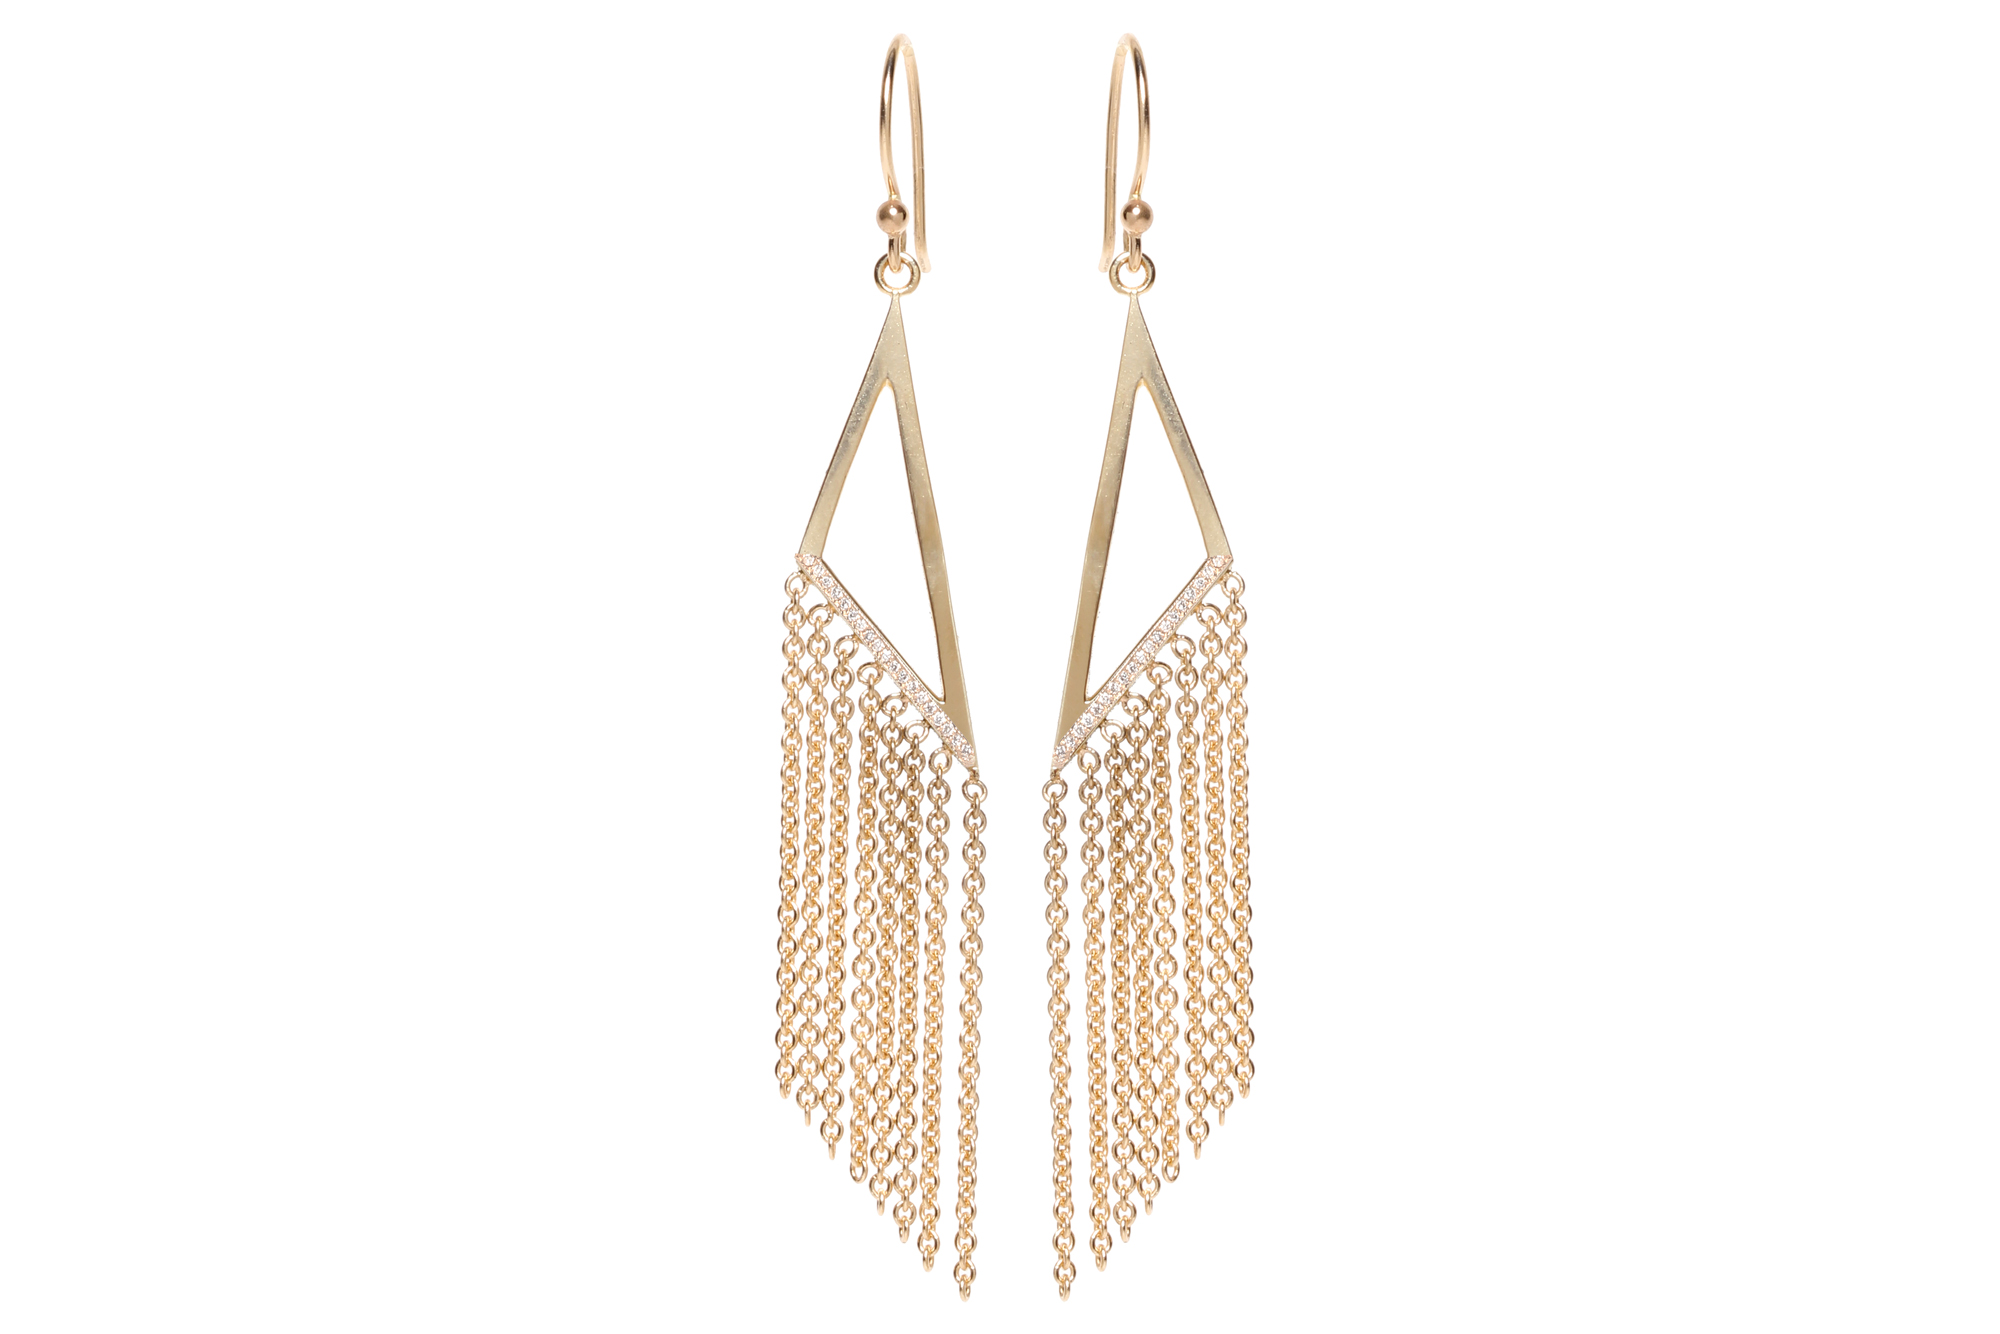 The Jewel - Zoe Chicco - Lookbook - Gold Triangle Chain Earrings